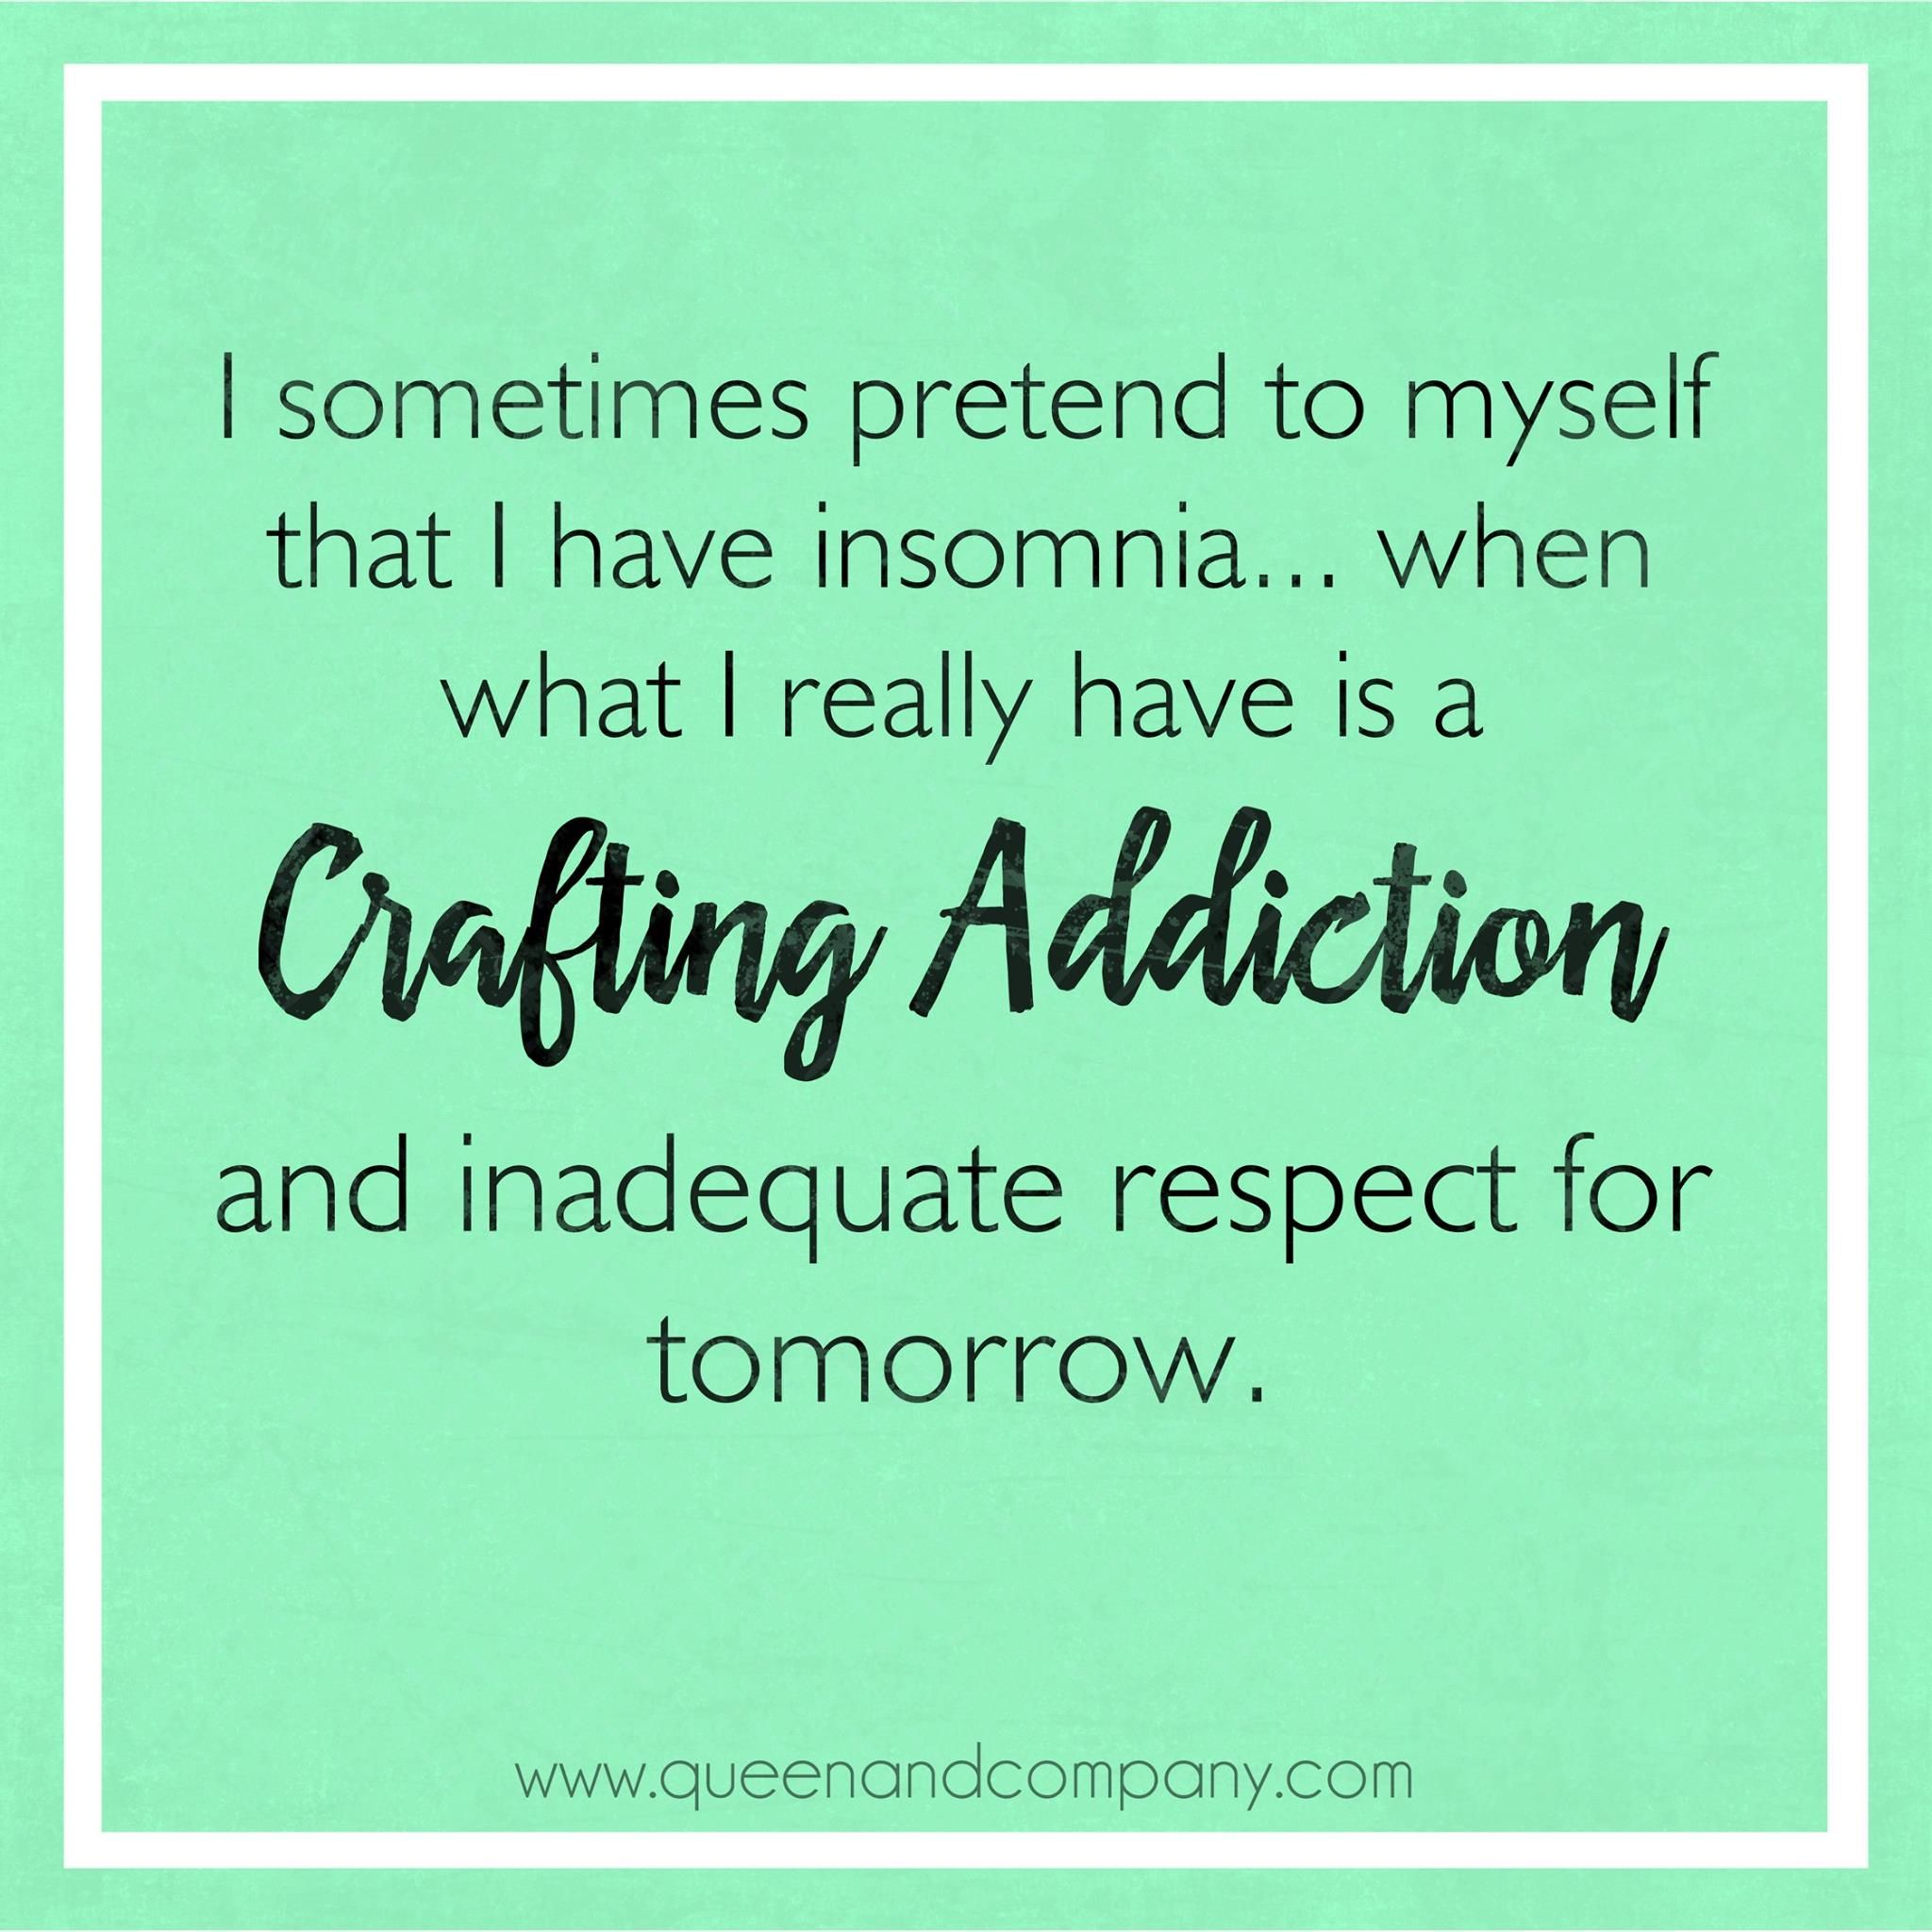 Crafting addiction. Join the Queen & Co Facebook page for